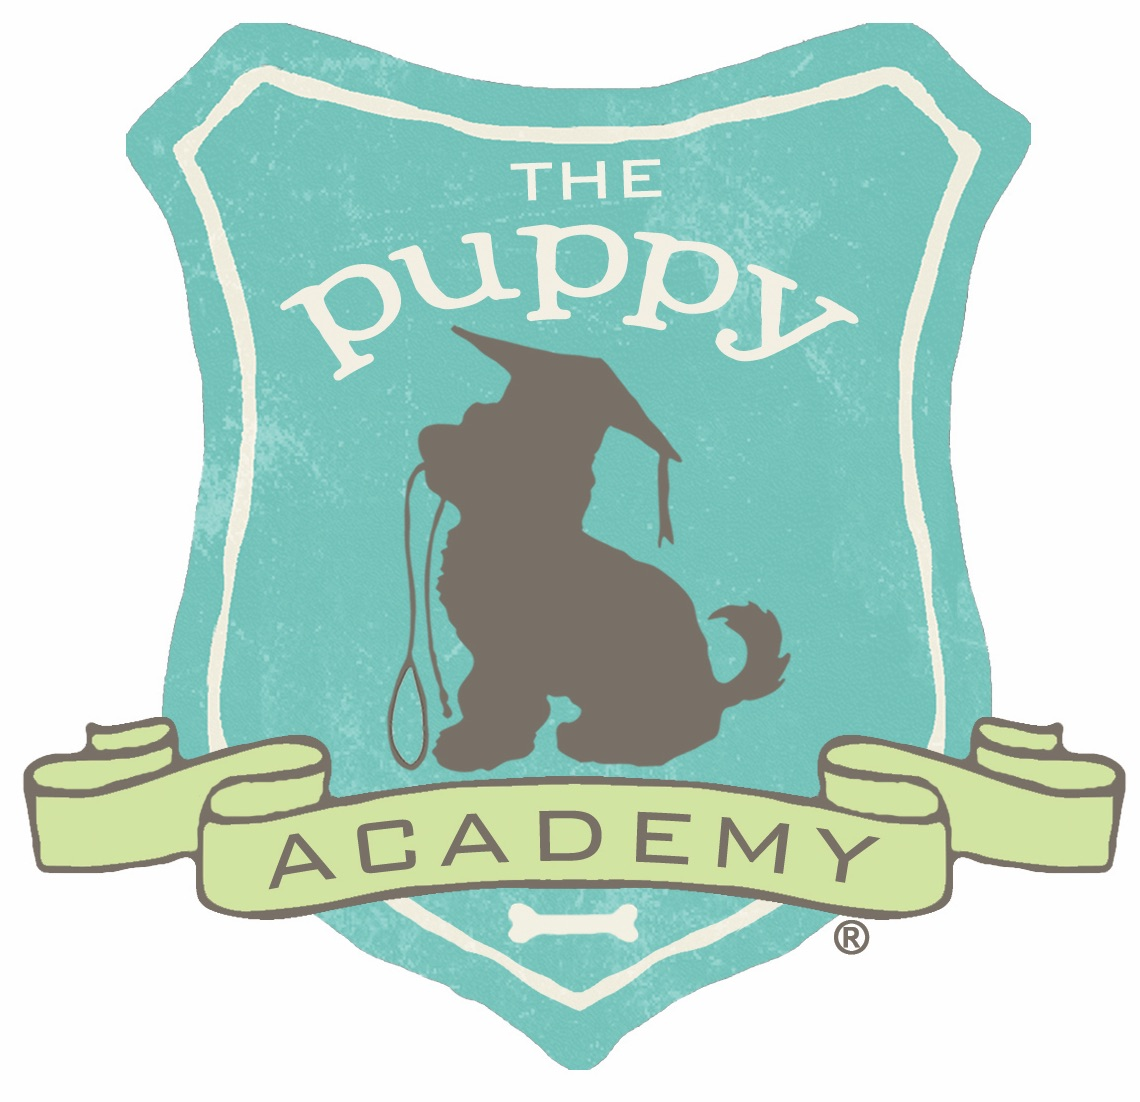 The Puppy Academy